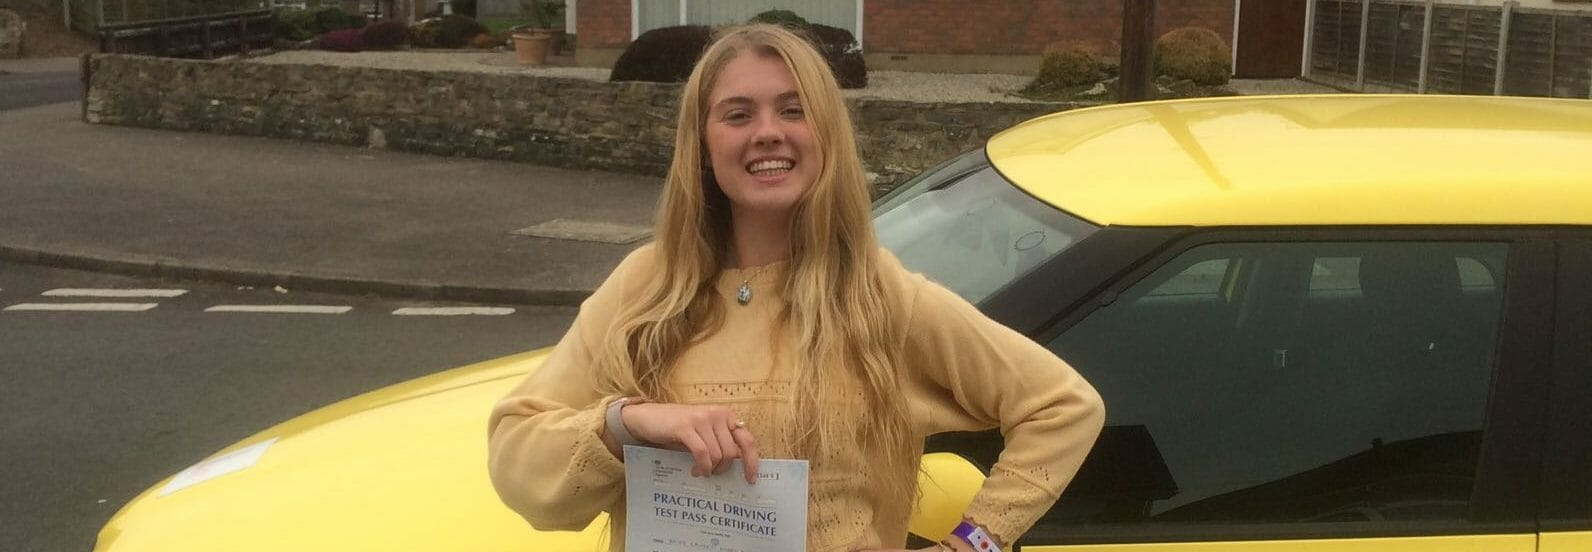 Well done to Lauren Martin of Bournemouth